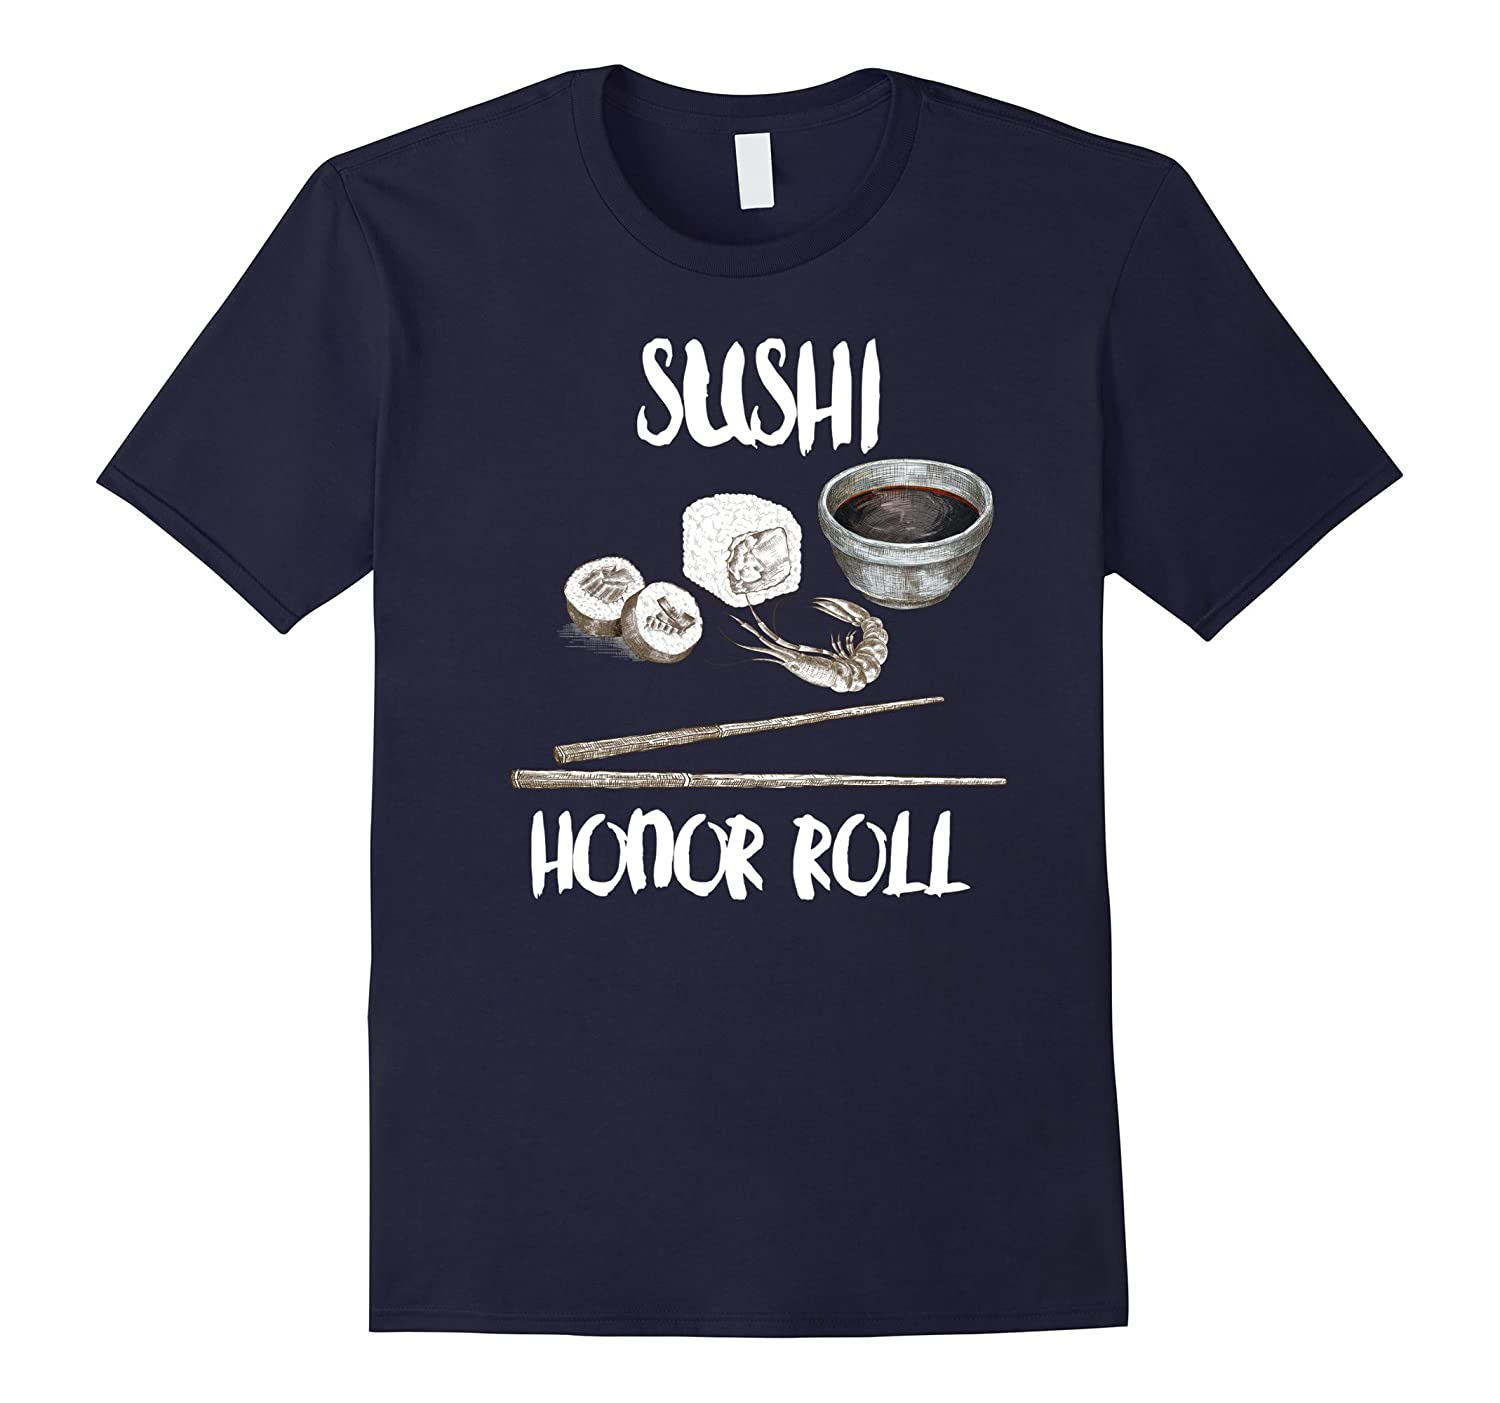 Sushi Honor Roll! Nothing but the Best Sushi Shirt for you!-CL